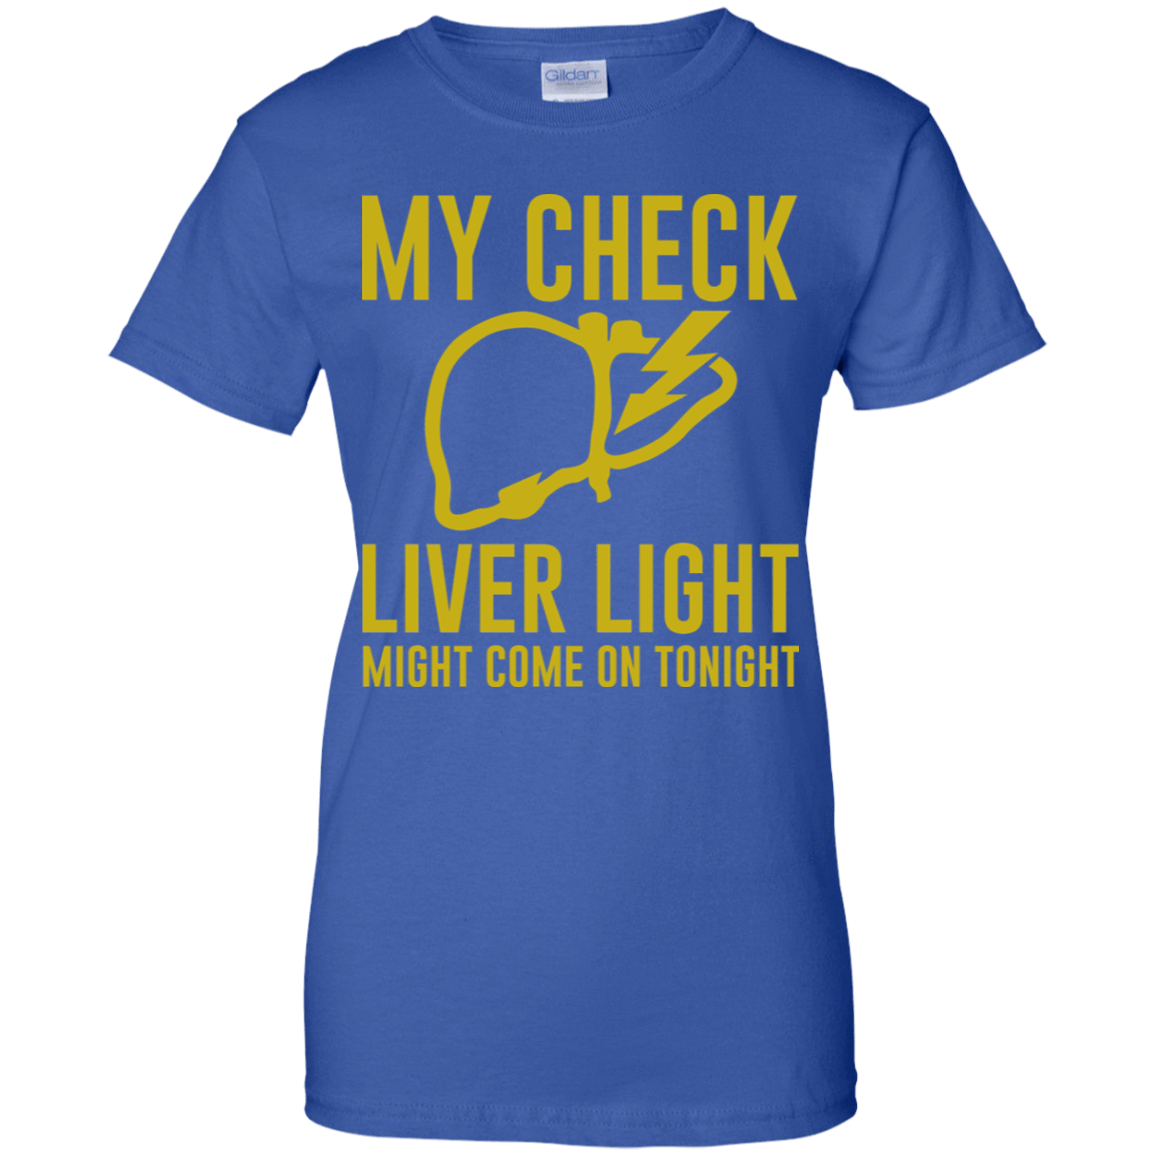 My Check Liver Light Might Come On Tonight 939-9264-73421402-44807 - Tee Ript